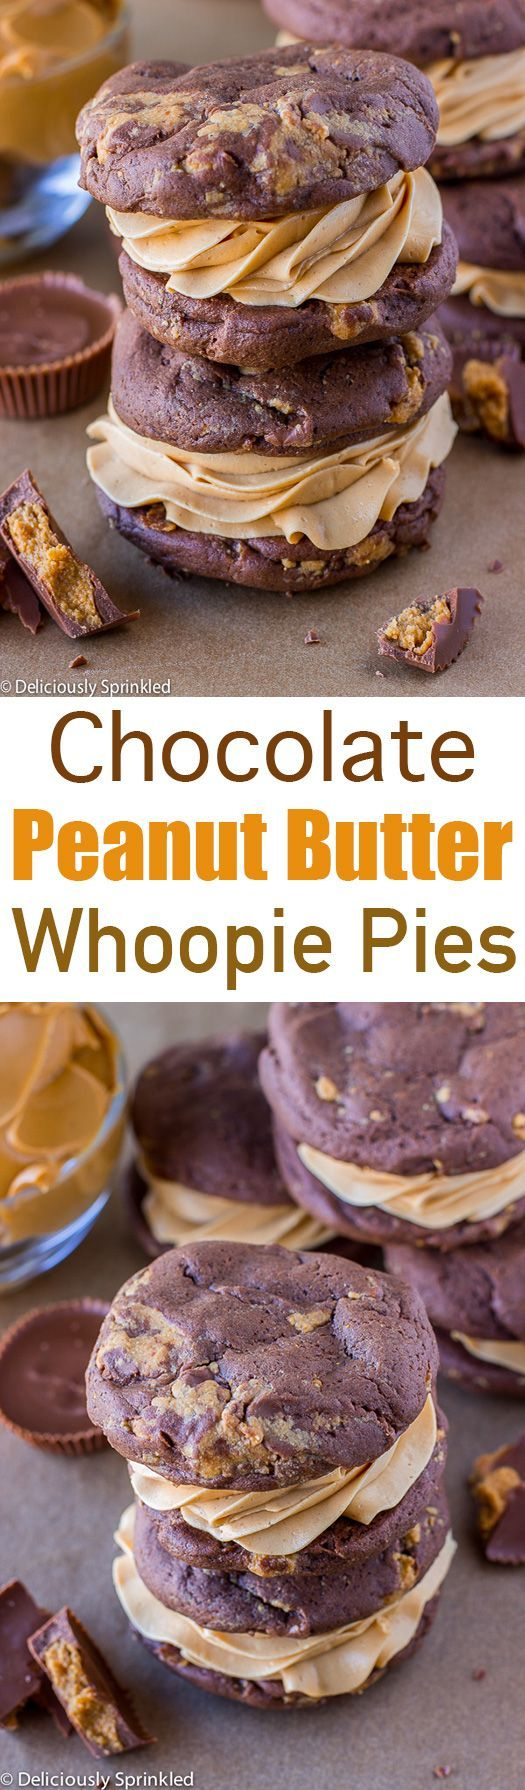 whoopie pies chocolate peanut butter peanut butter peanuts pies butter ...